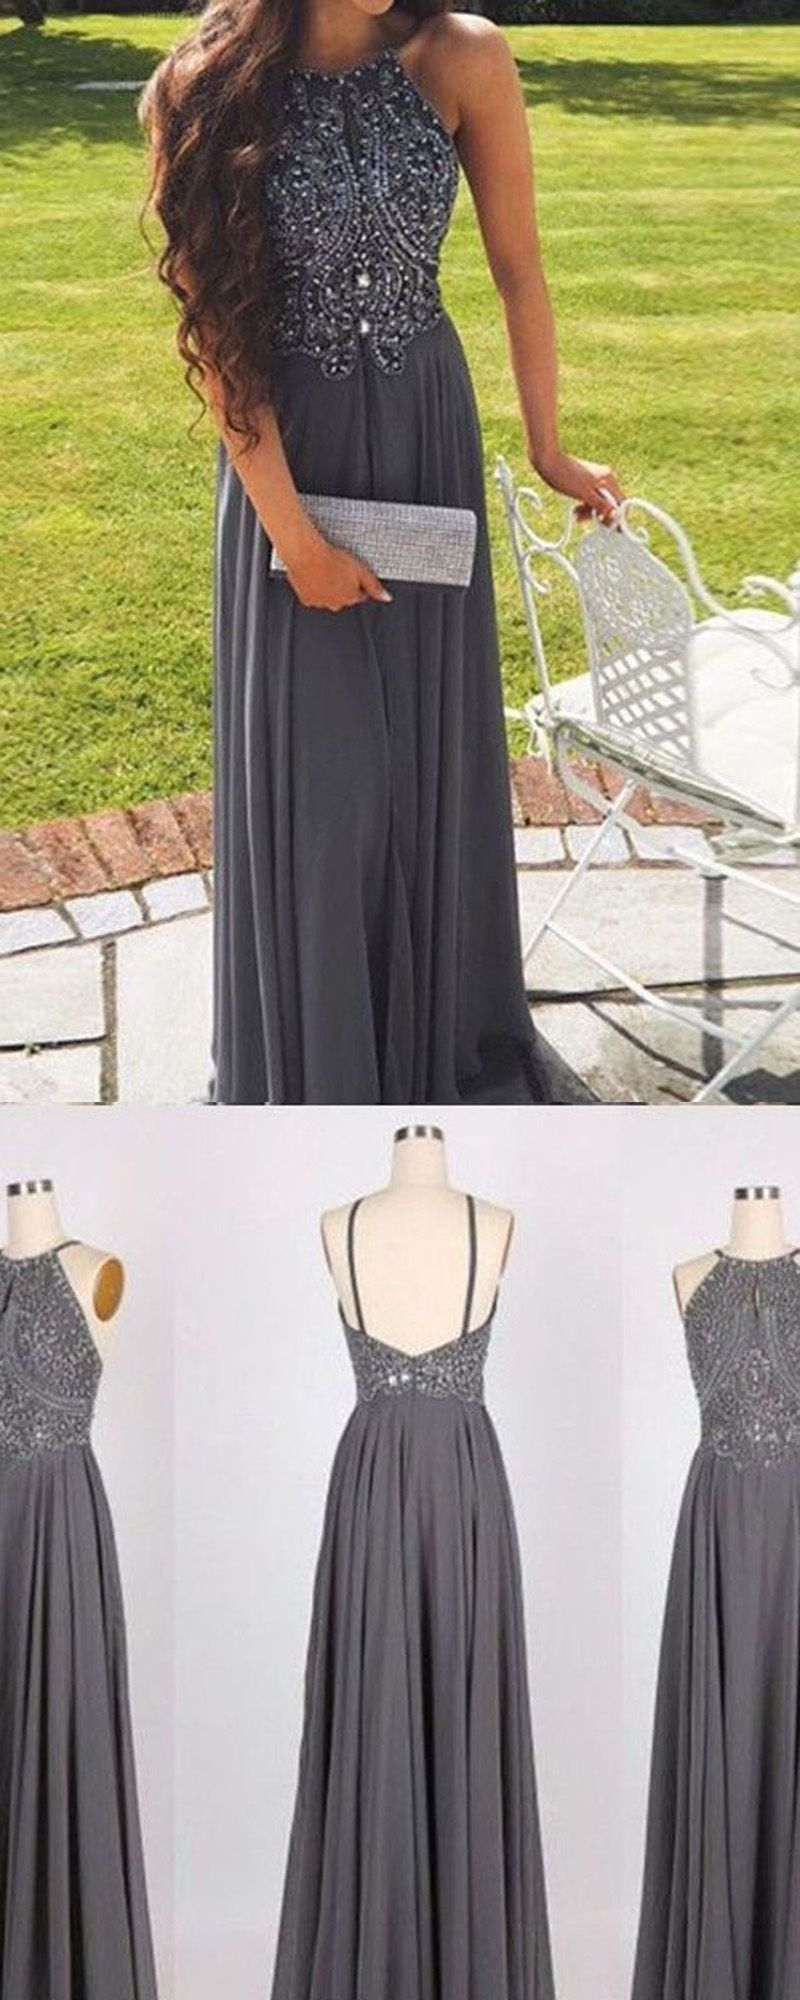 Hot Selling A-Line Prom Dress,Halter Gray Backless Prom Gown,Long ...